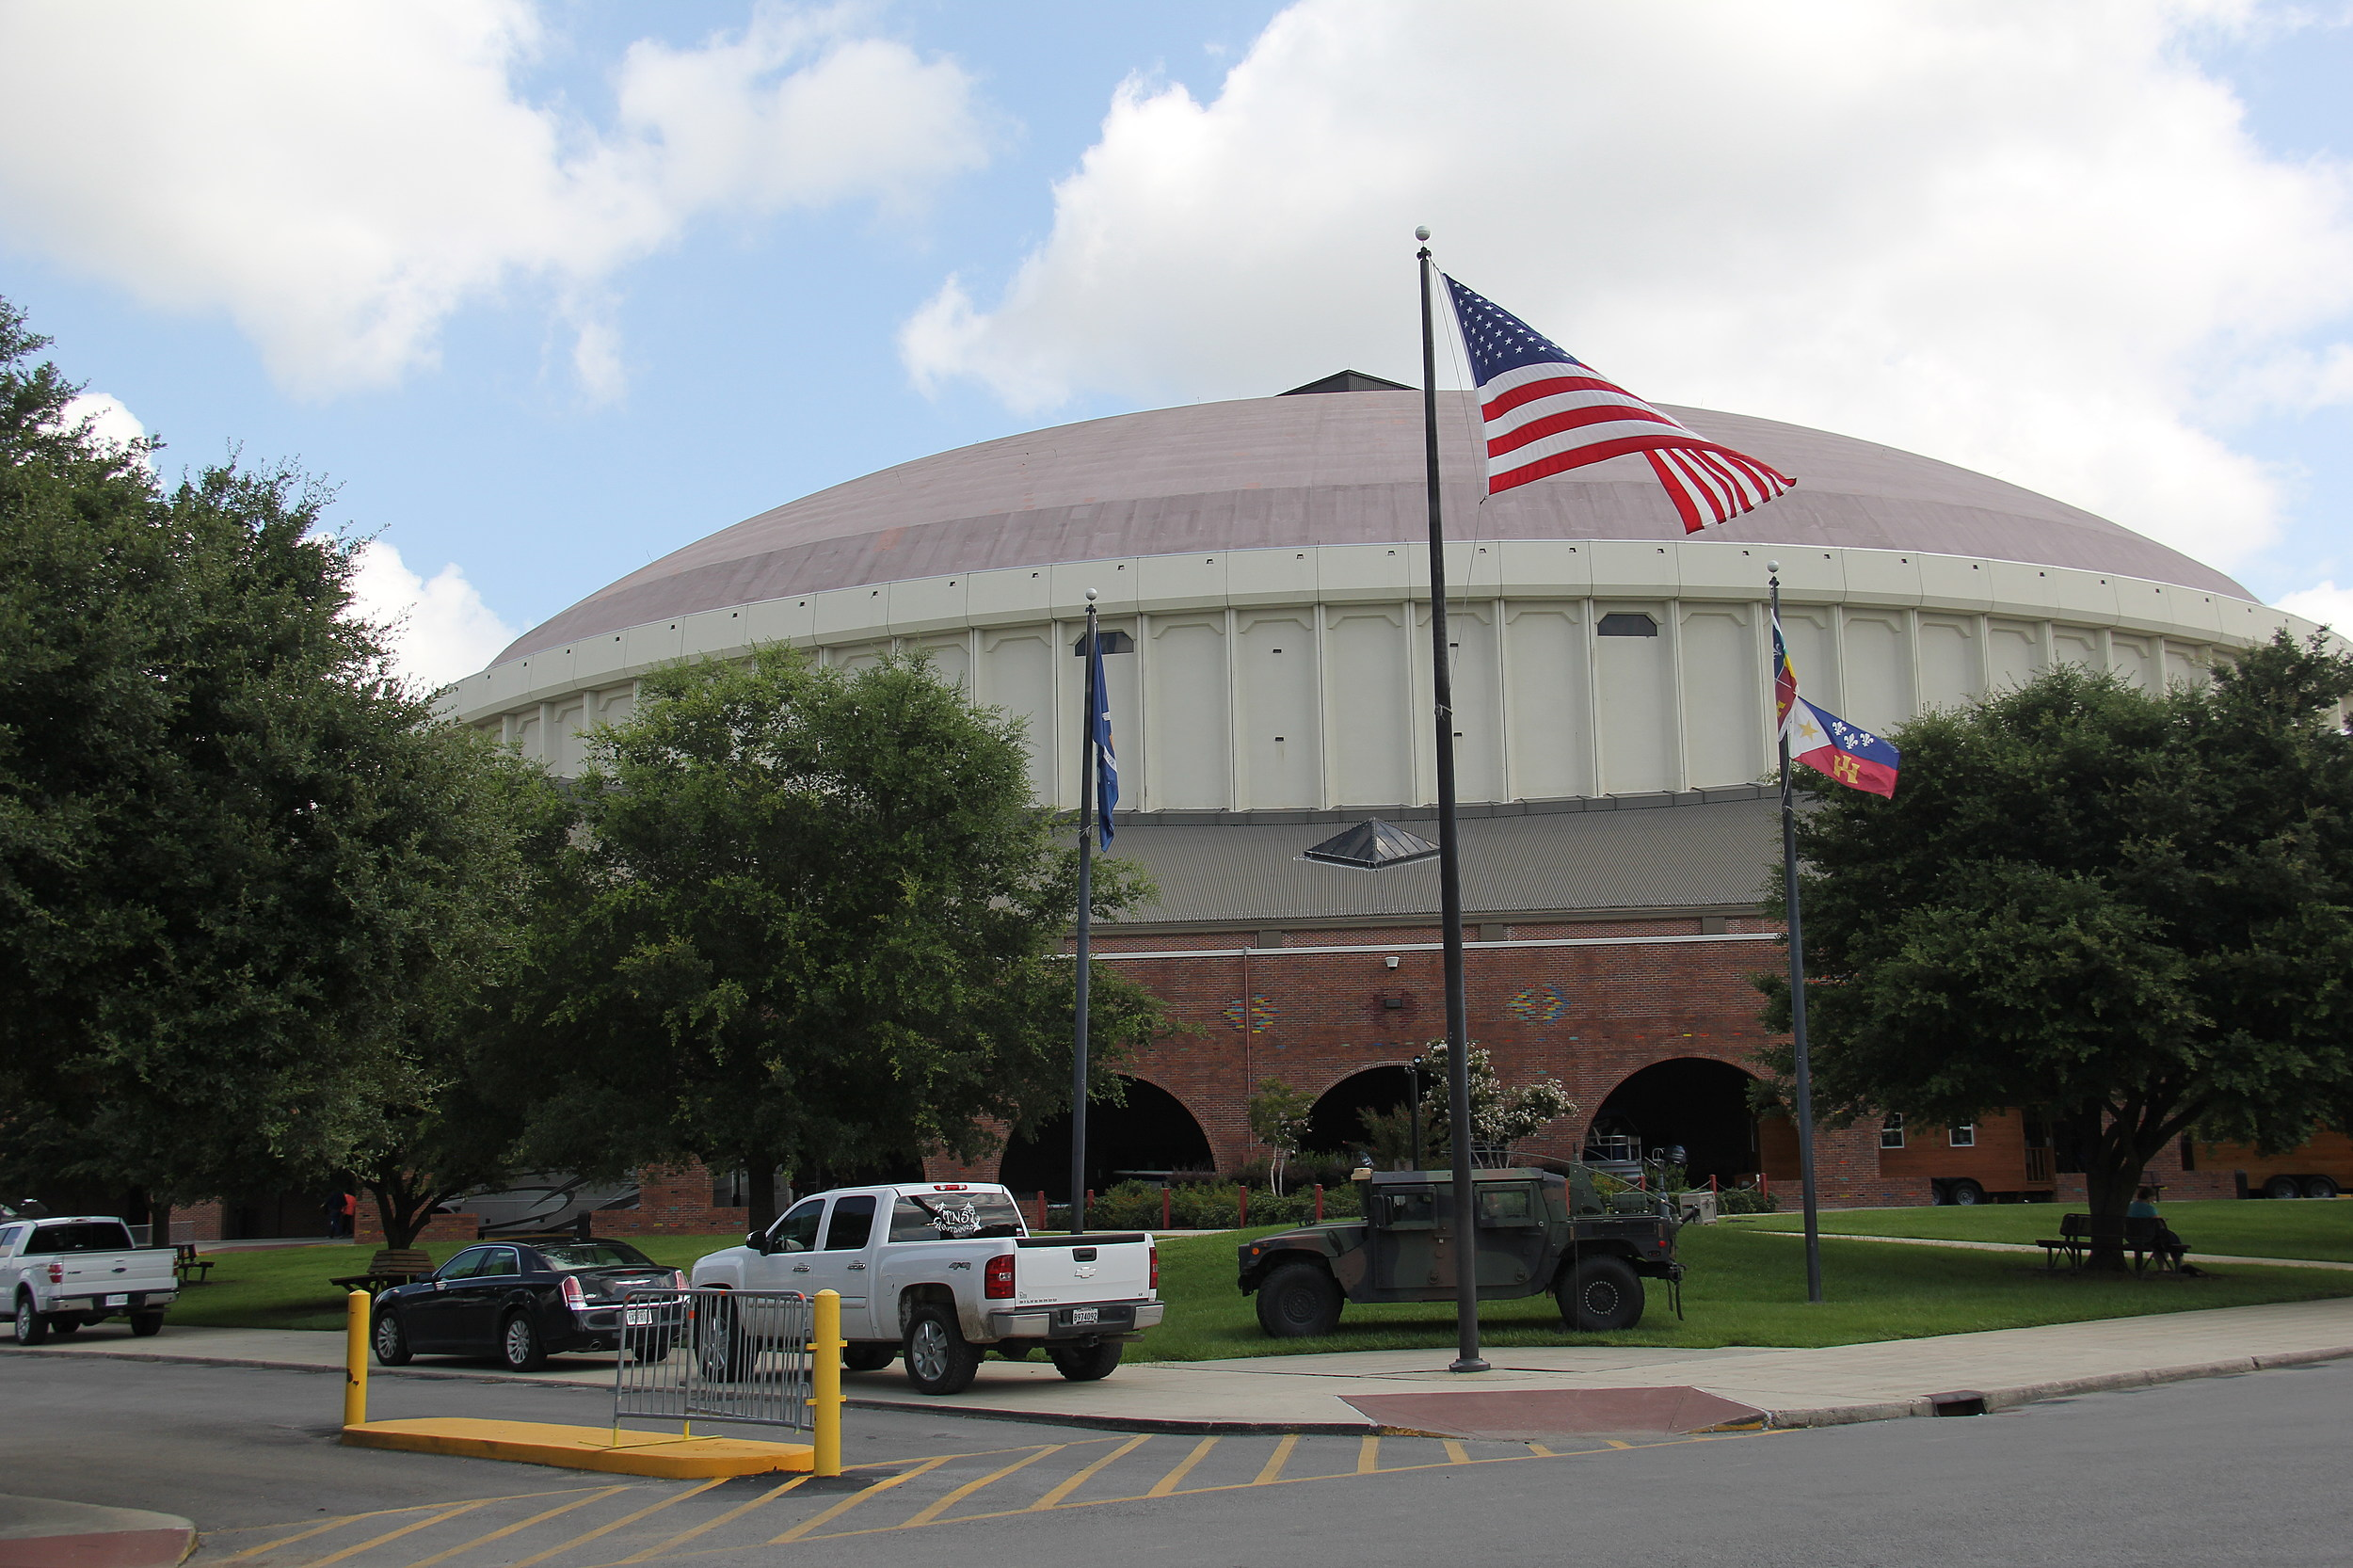 Outdoor Expo Stands : Vendors at the cajundome for la outdoor expo louisiana